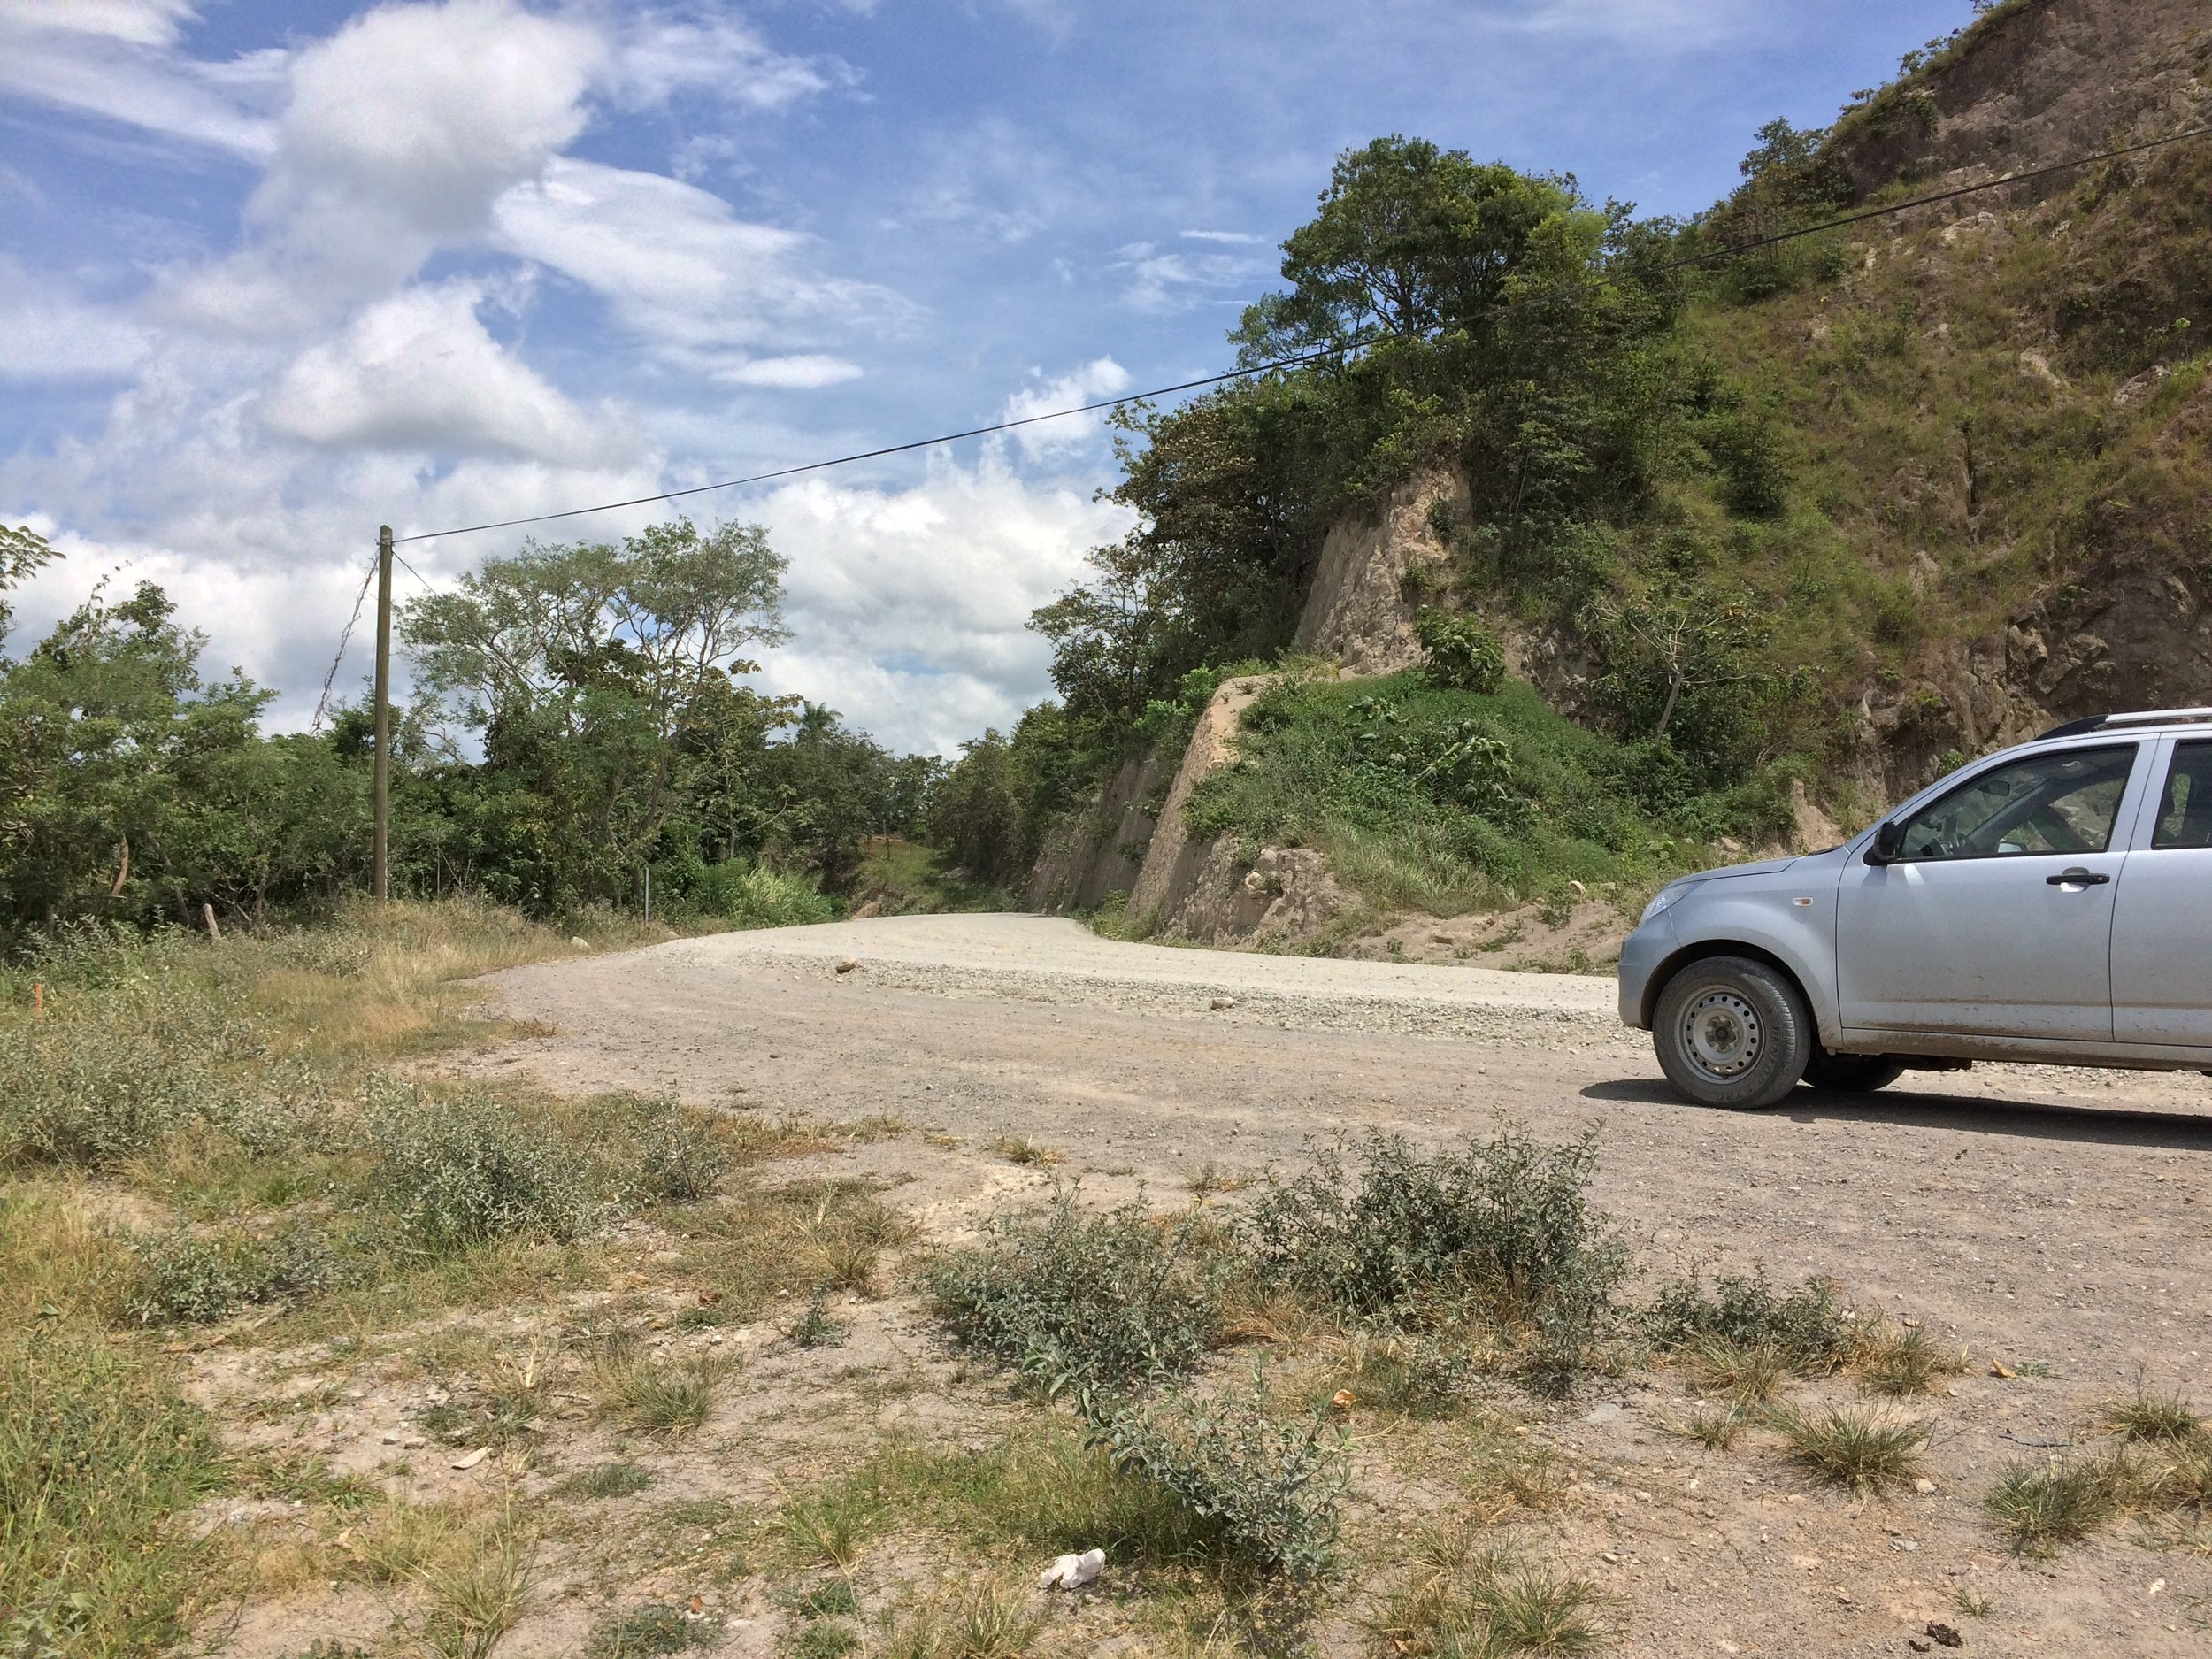 Driving is a great experience in Costa Rica, as long as one is properly prepared and patient.